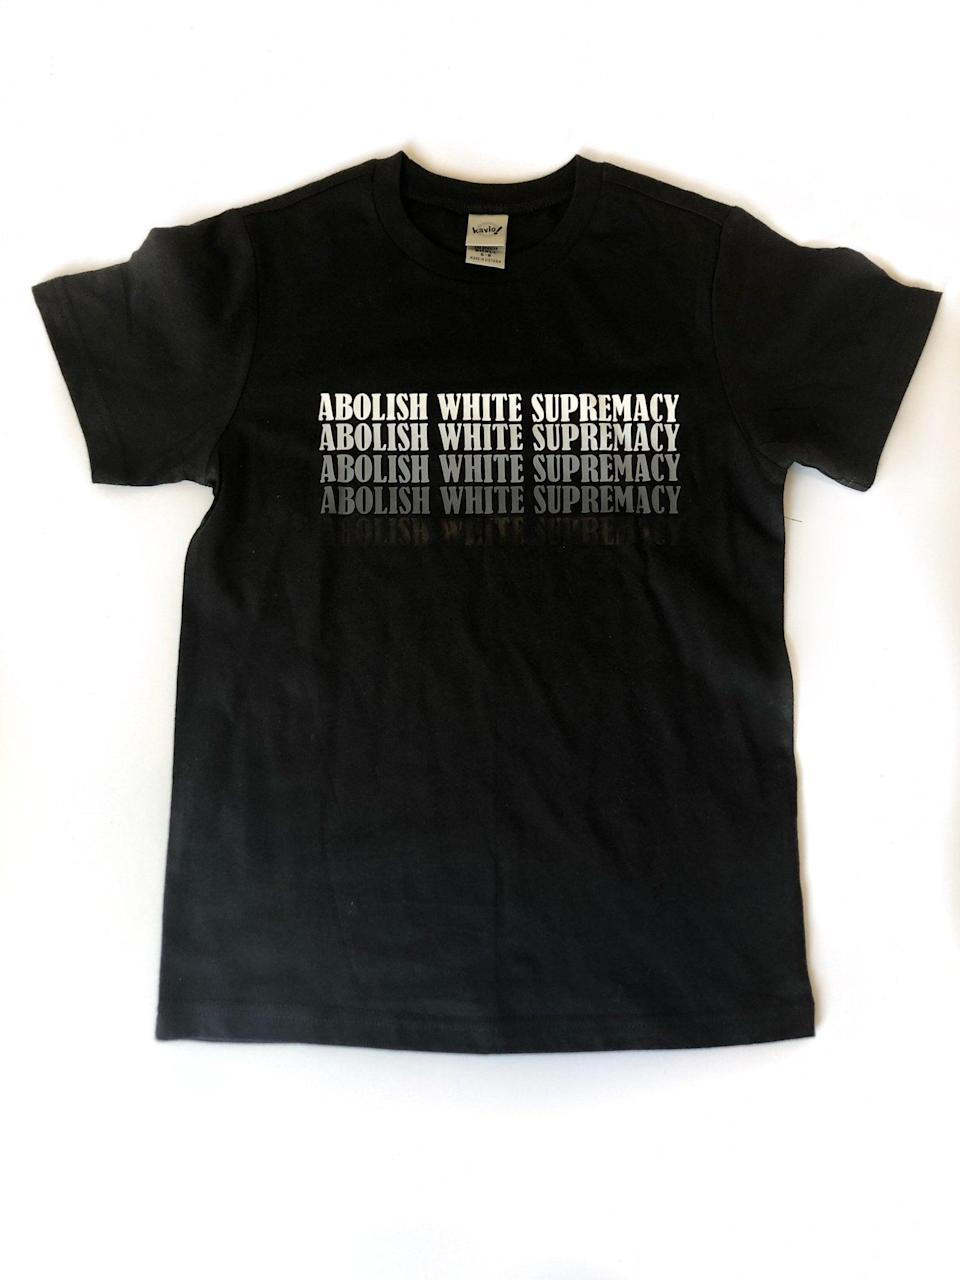 """<p>Available in a slew of sizes, the <a href=""""https://www.popsugar.com/buy/Abolish-White-Supremacy-Kids-Shirt-579614?p_name=Abolish%20White%20Supremacy%20Kids%20Shirt&retailer=typicalblacktees.com&pid=579614&price=24&evar1=moms%3Aus&evar9=47528625&evar98=https%3A%2F%2Fwww.popsugar.com%2Ffamily%2Fphoto-gallery%2F47528625%2Fimage%2F47528781%2FAbolish-White-Supremacy-Kids-Shirt&list1=kid%20shopping&prop13=mobile&pdata=1"""" class=""""link rapid-noclick-resp"""" rel=""""nofollow noopener"""" target=""""_blank"""" data-ylk=""""slk:Abolish White Supremacy Kids Shirt"""">Abolish White Supremacy Kids Shirt</a> ($24) is a must buy.</p>"""